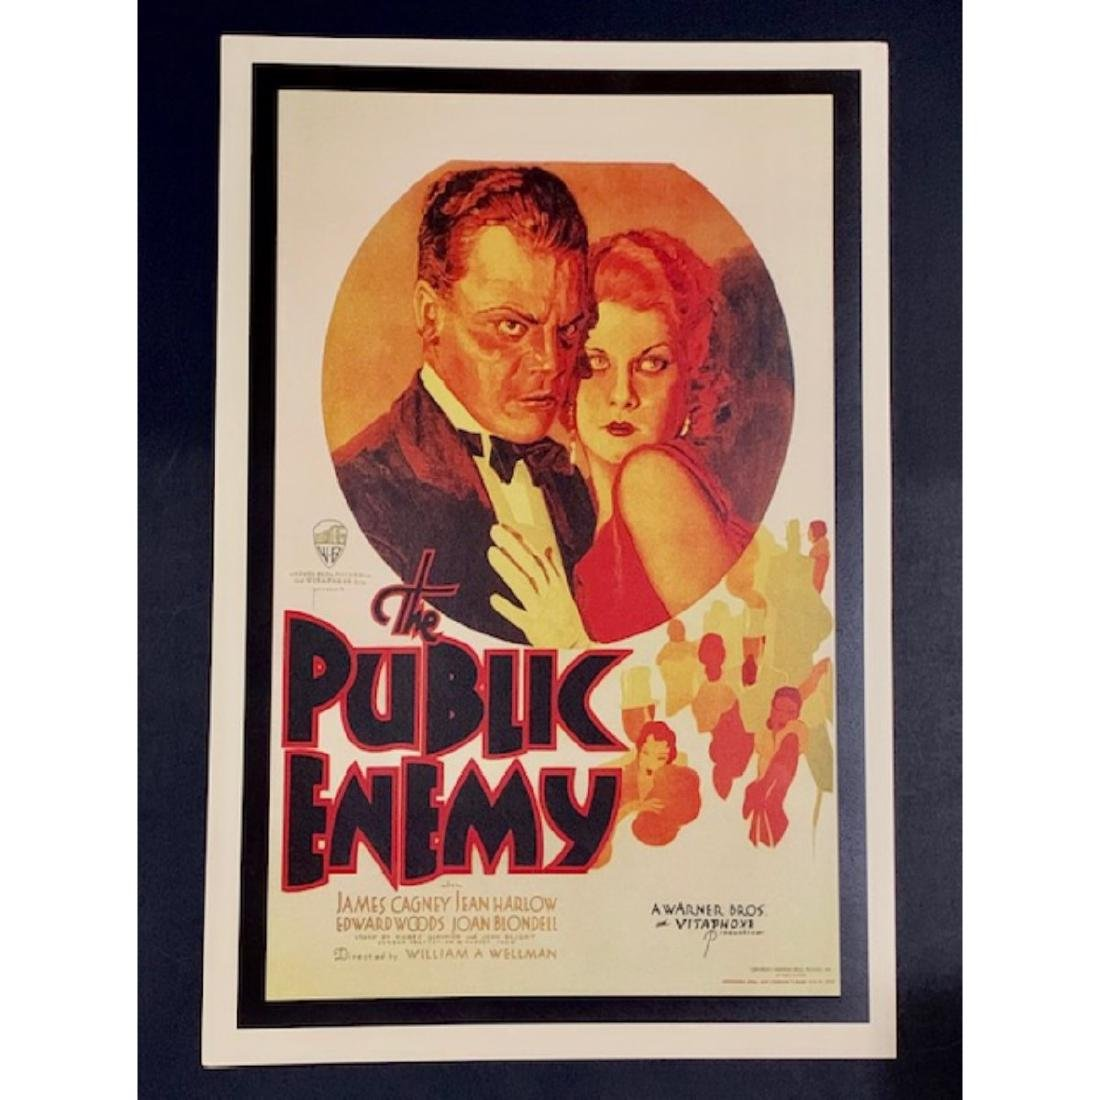 James Cagney in The PUBLIC ENEMY Movie Poster